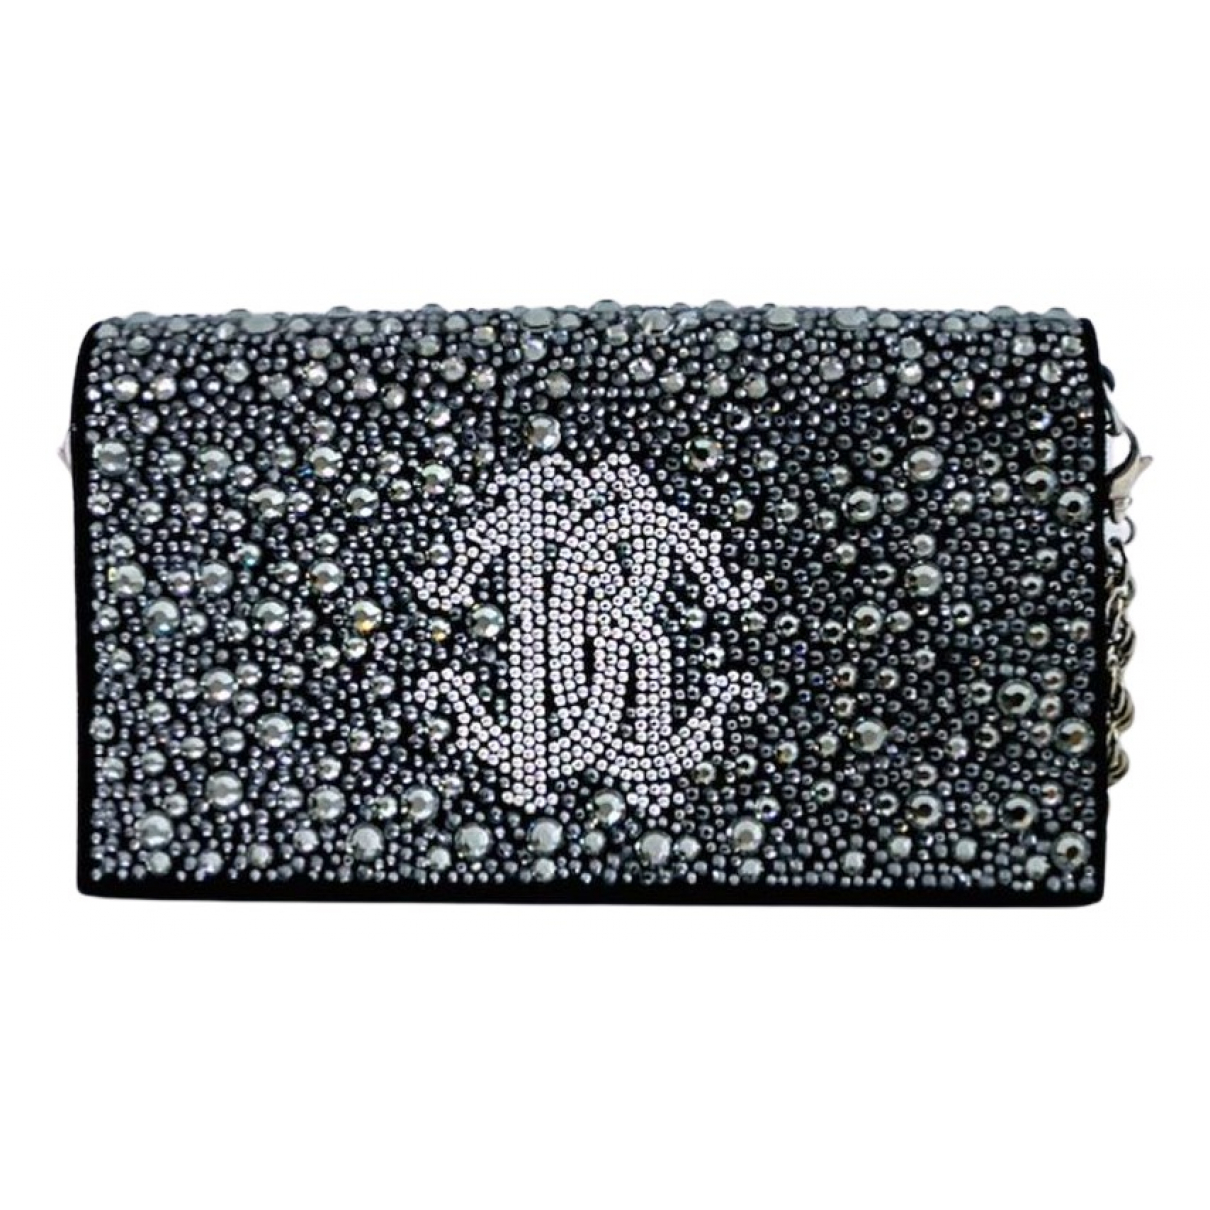 Roberto Cavalli N Silver Leather Clutch bag for Women N